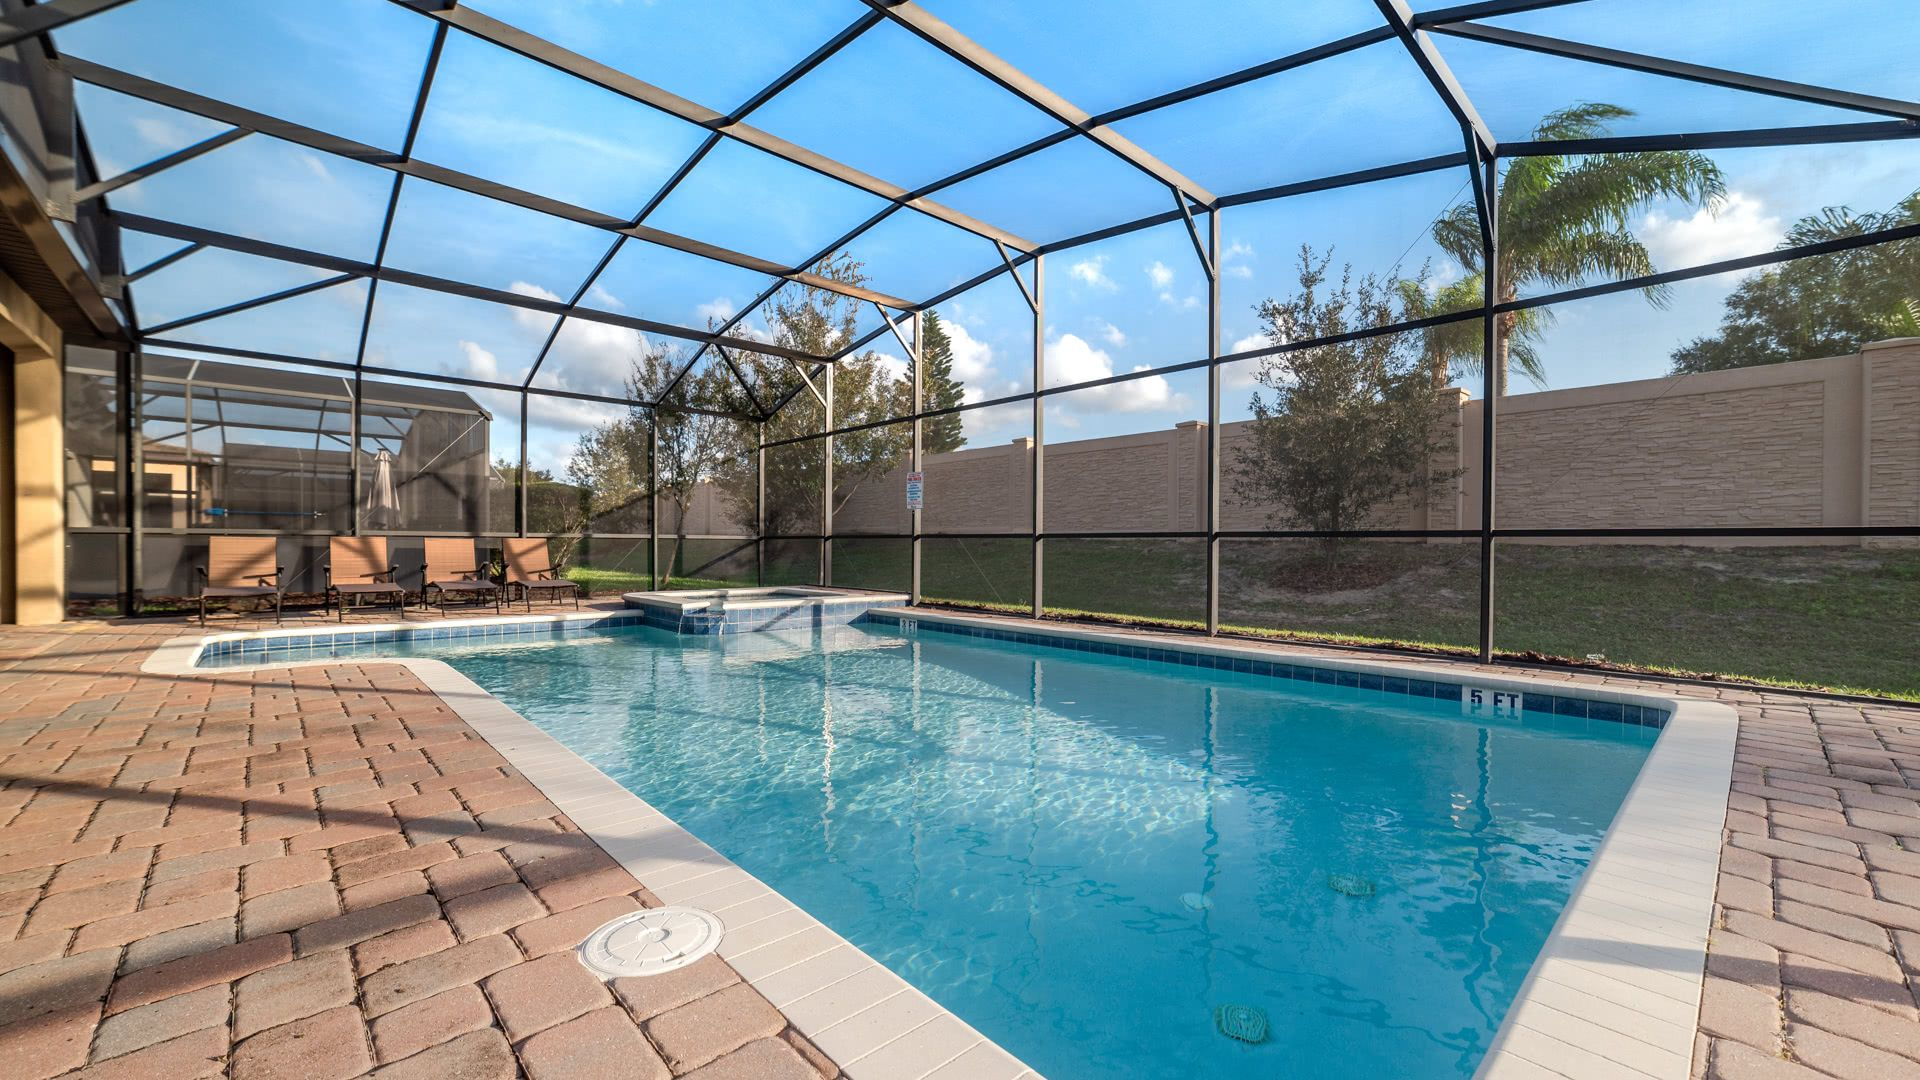 1506 Moon Valley Drive-209988